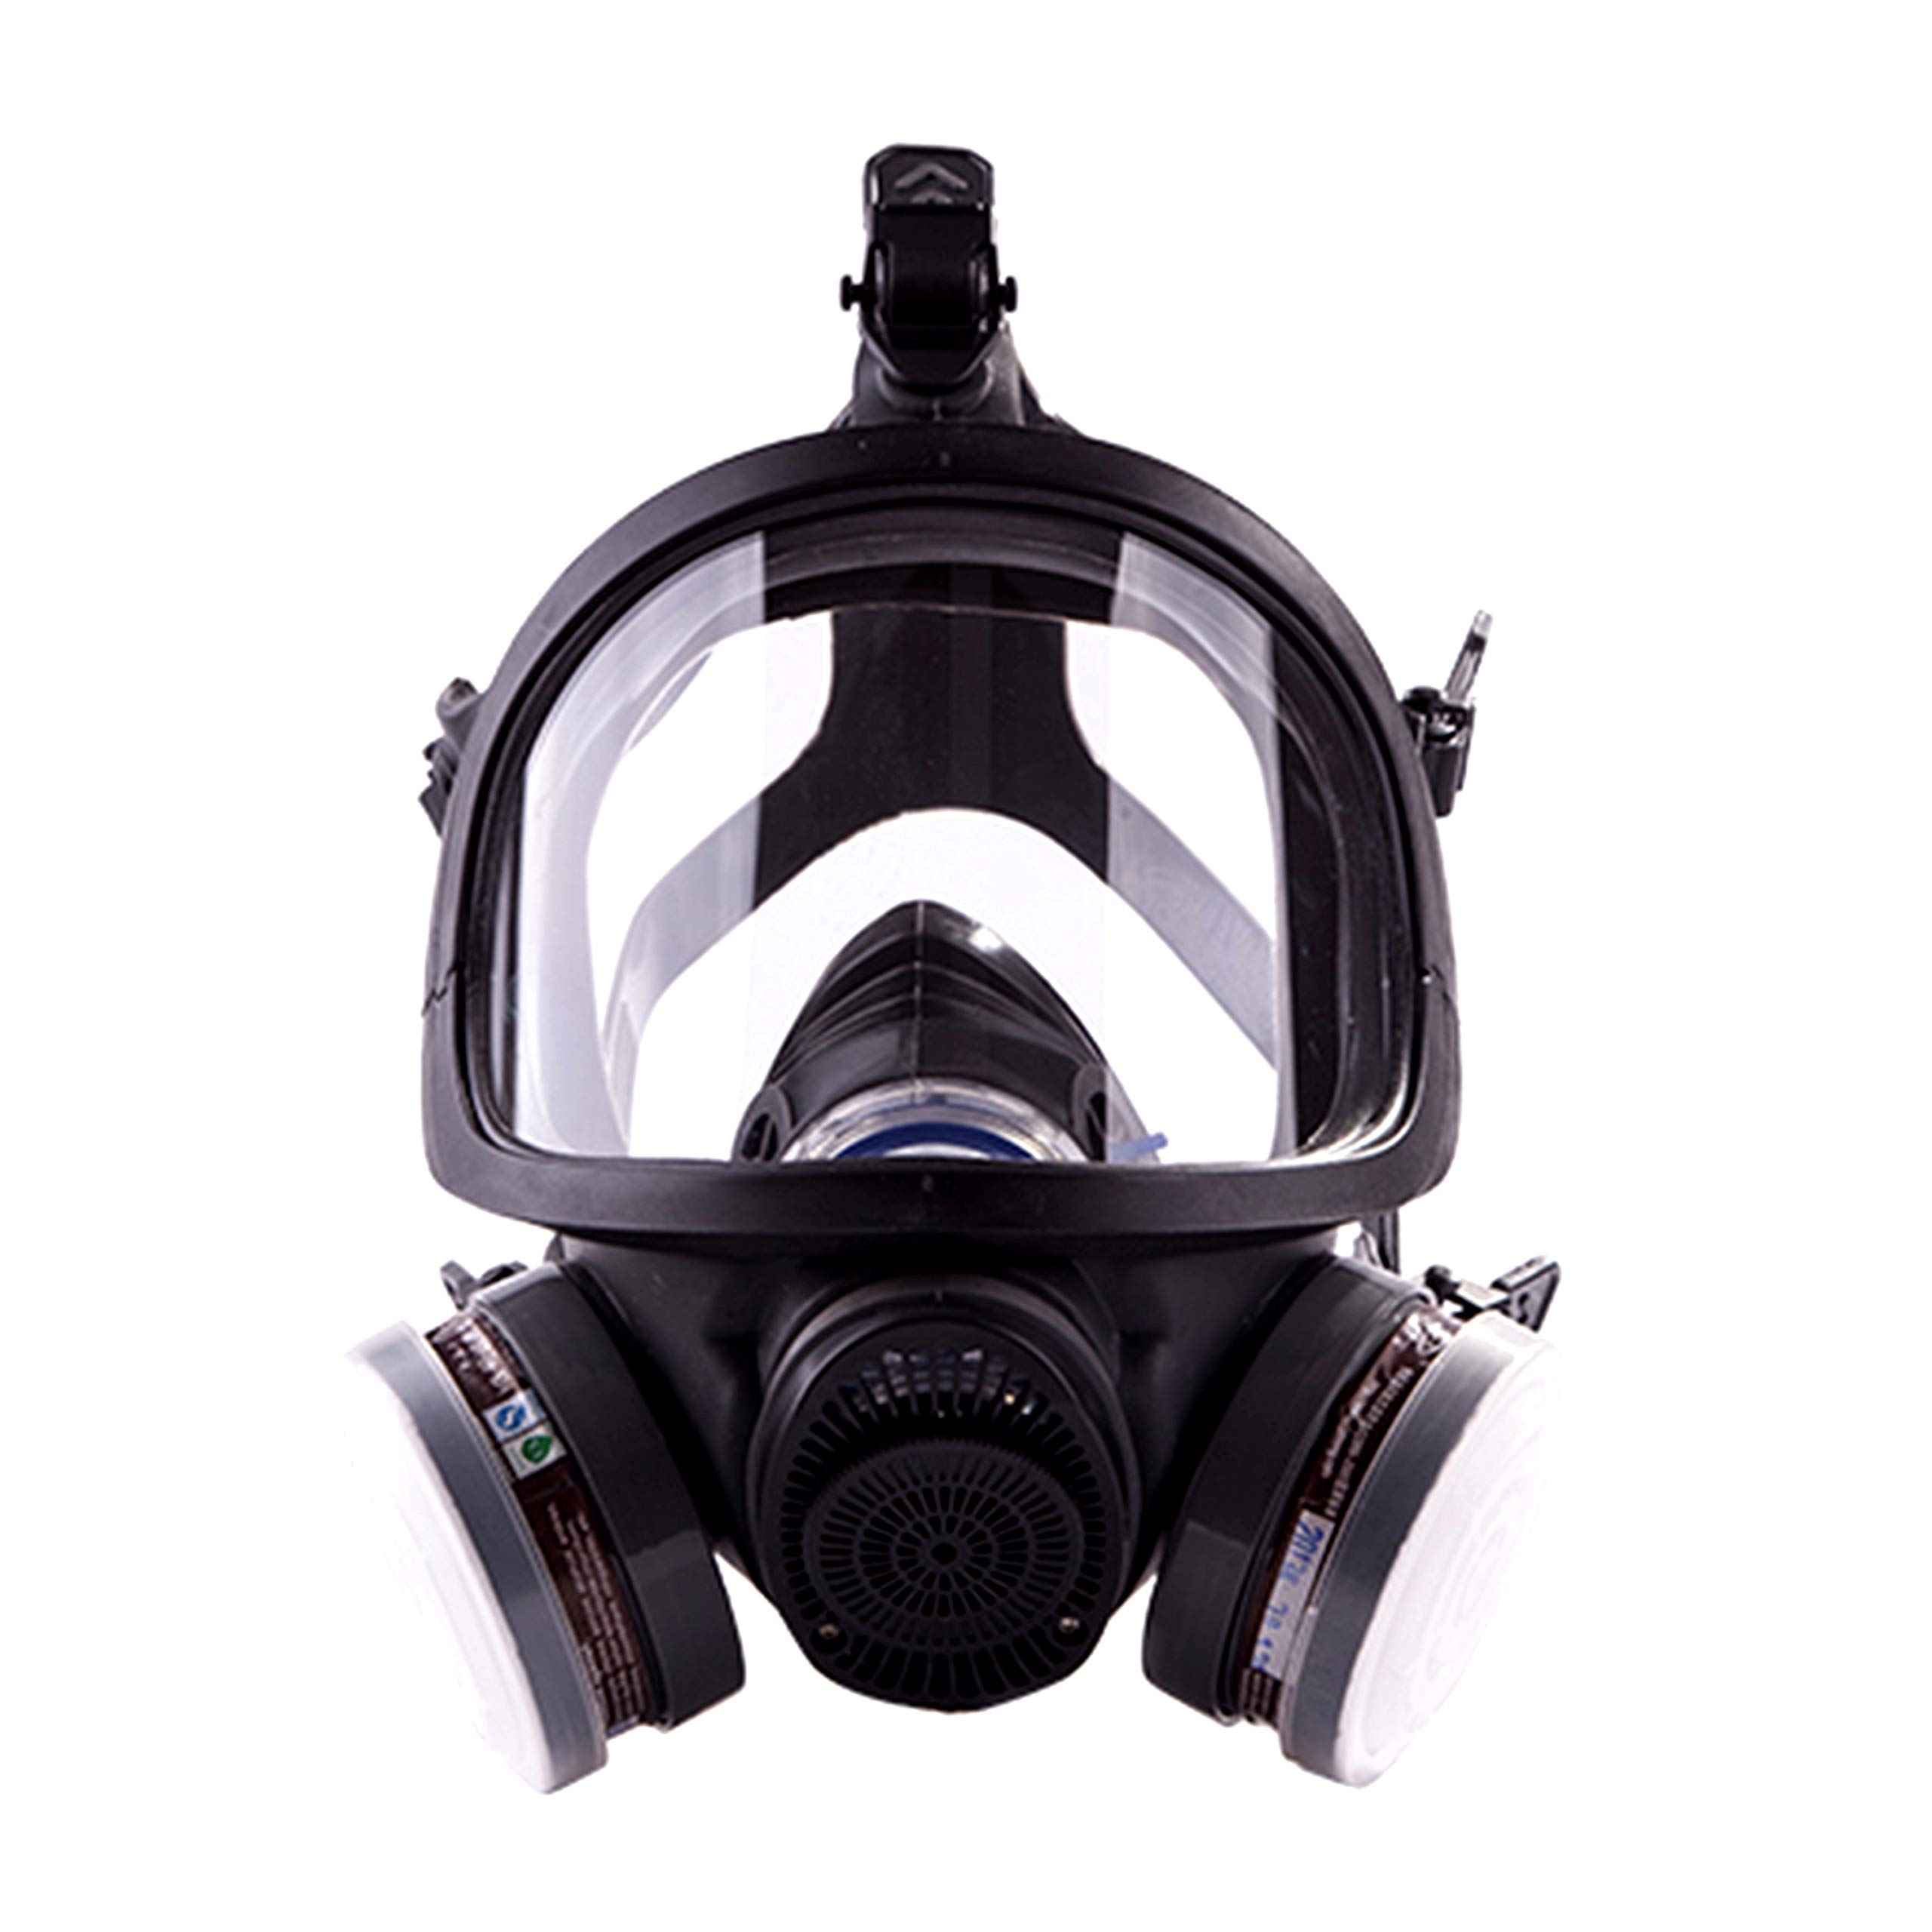 Holulo Full Face Respirator Double Air Filter Cartridge Industrial Grade Quality Respiratory Protection Paint Safety Mask CE Certification